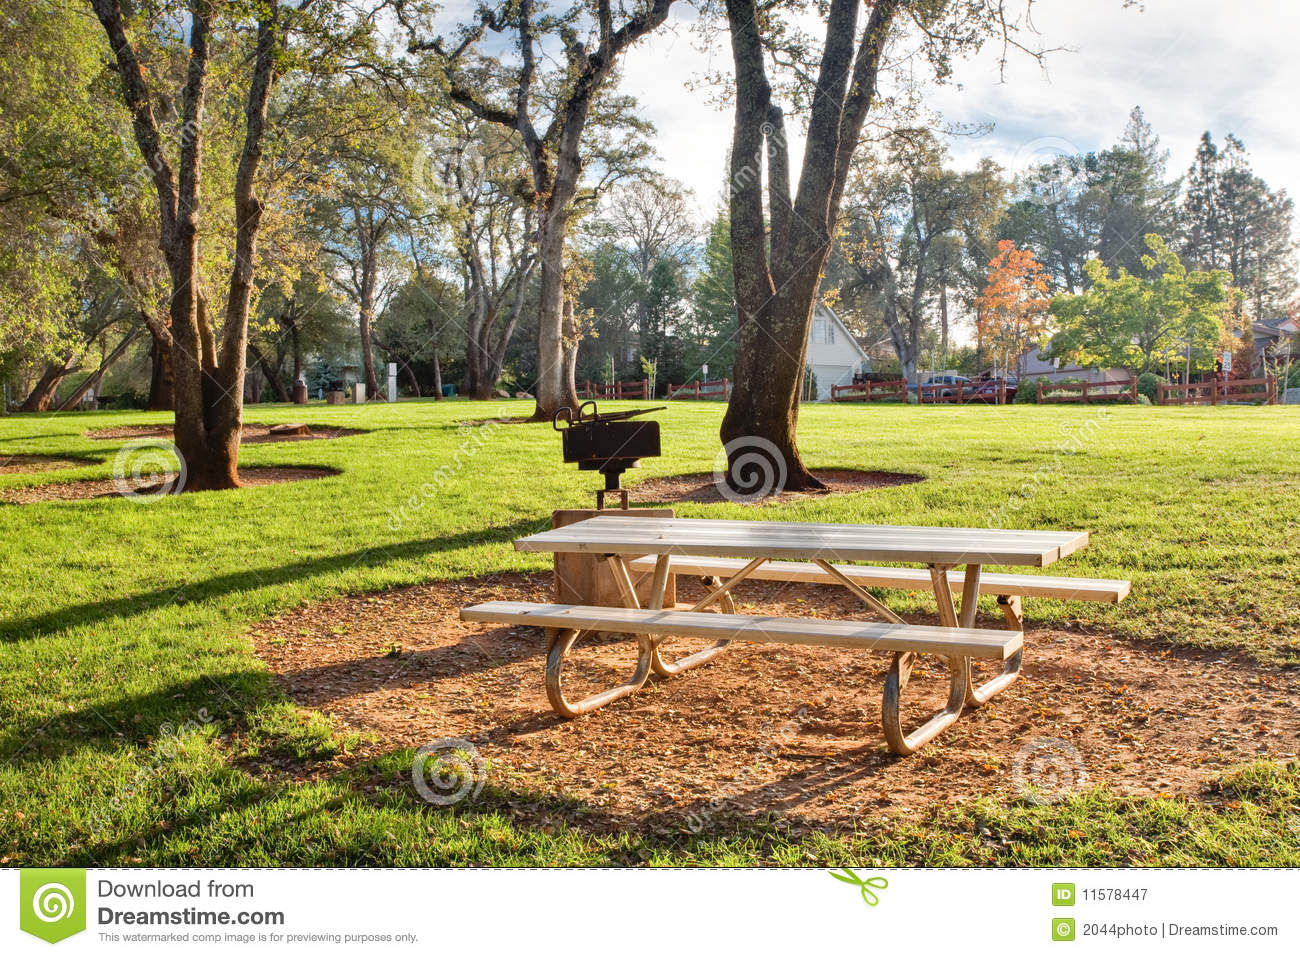 Picnic Table In Public Park Stock Image - Image: 11578447